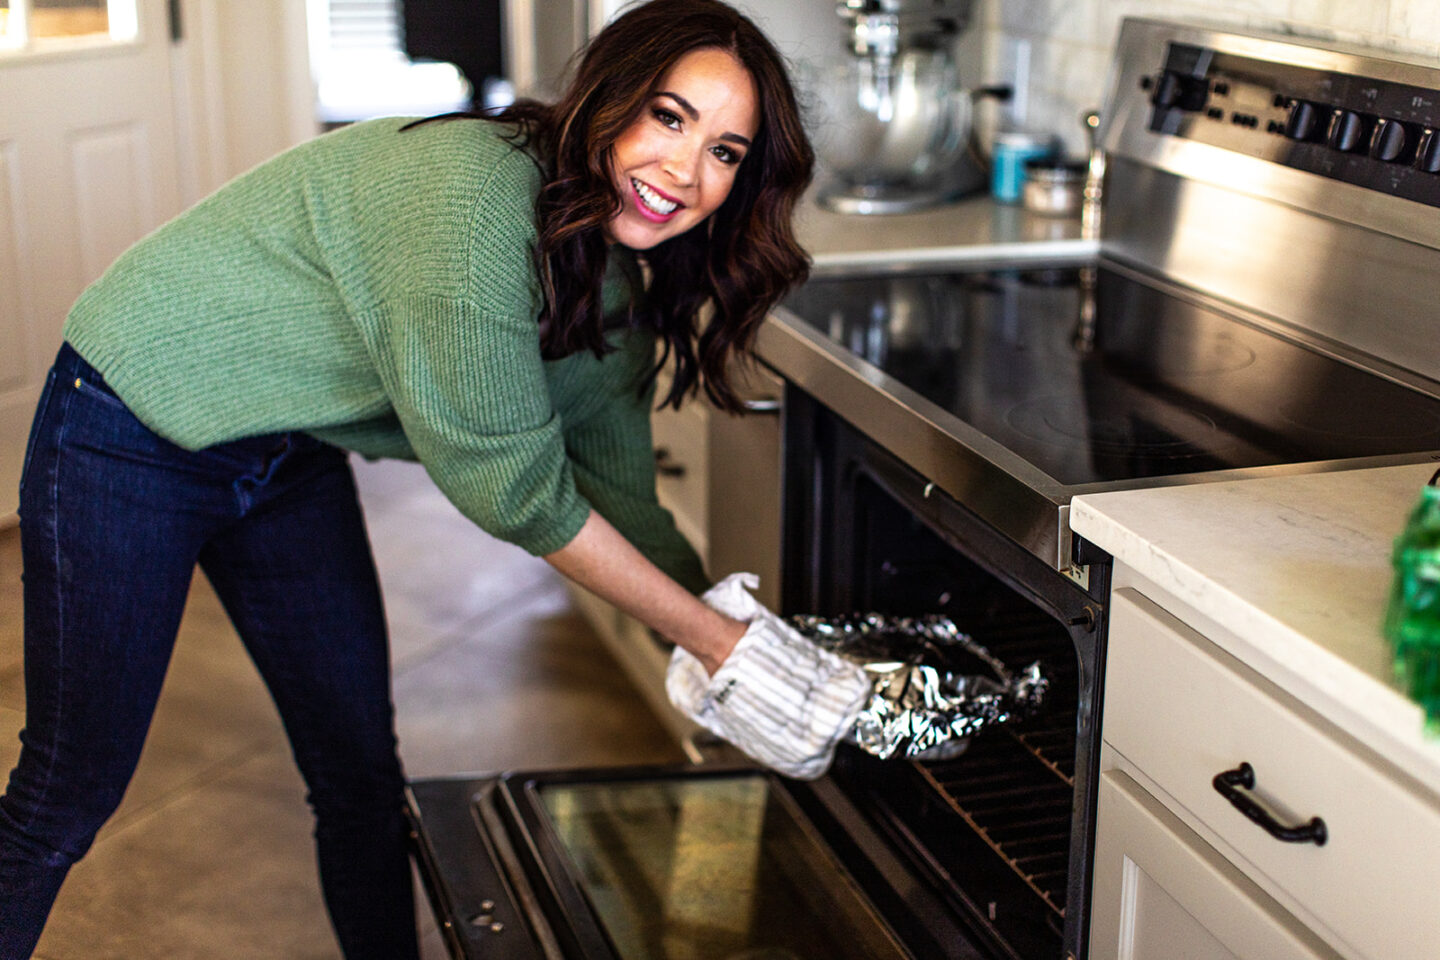 hibachi mushrooms recipe featured by top Atlanta lifestyle blogger, Moderately High Maintenance |Hibachi Mushrooms by popular Atlanta lifestyle blog, Moderately High Maintenance: image of a woman placing sliced mushrooms and chopped onions wrapped in tin foil in the oven.